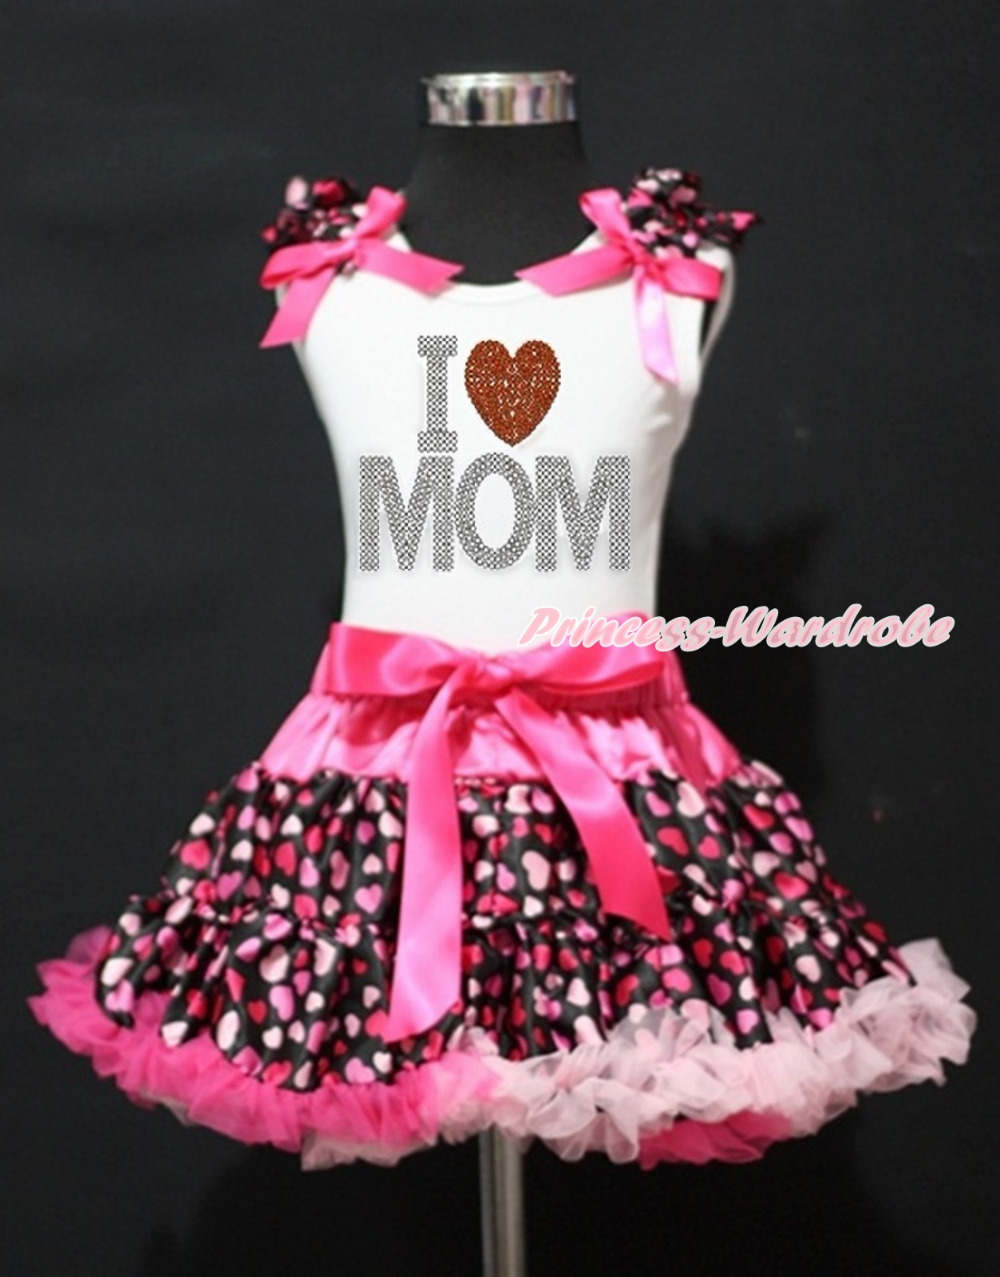 Mommys day White Top Rhinestone Mothers Day Love Heart Hot Pink Heart Girl Skirt 1-8Y MAPSA0012<br>